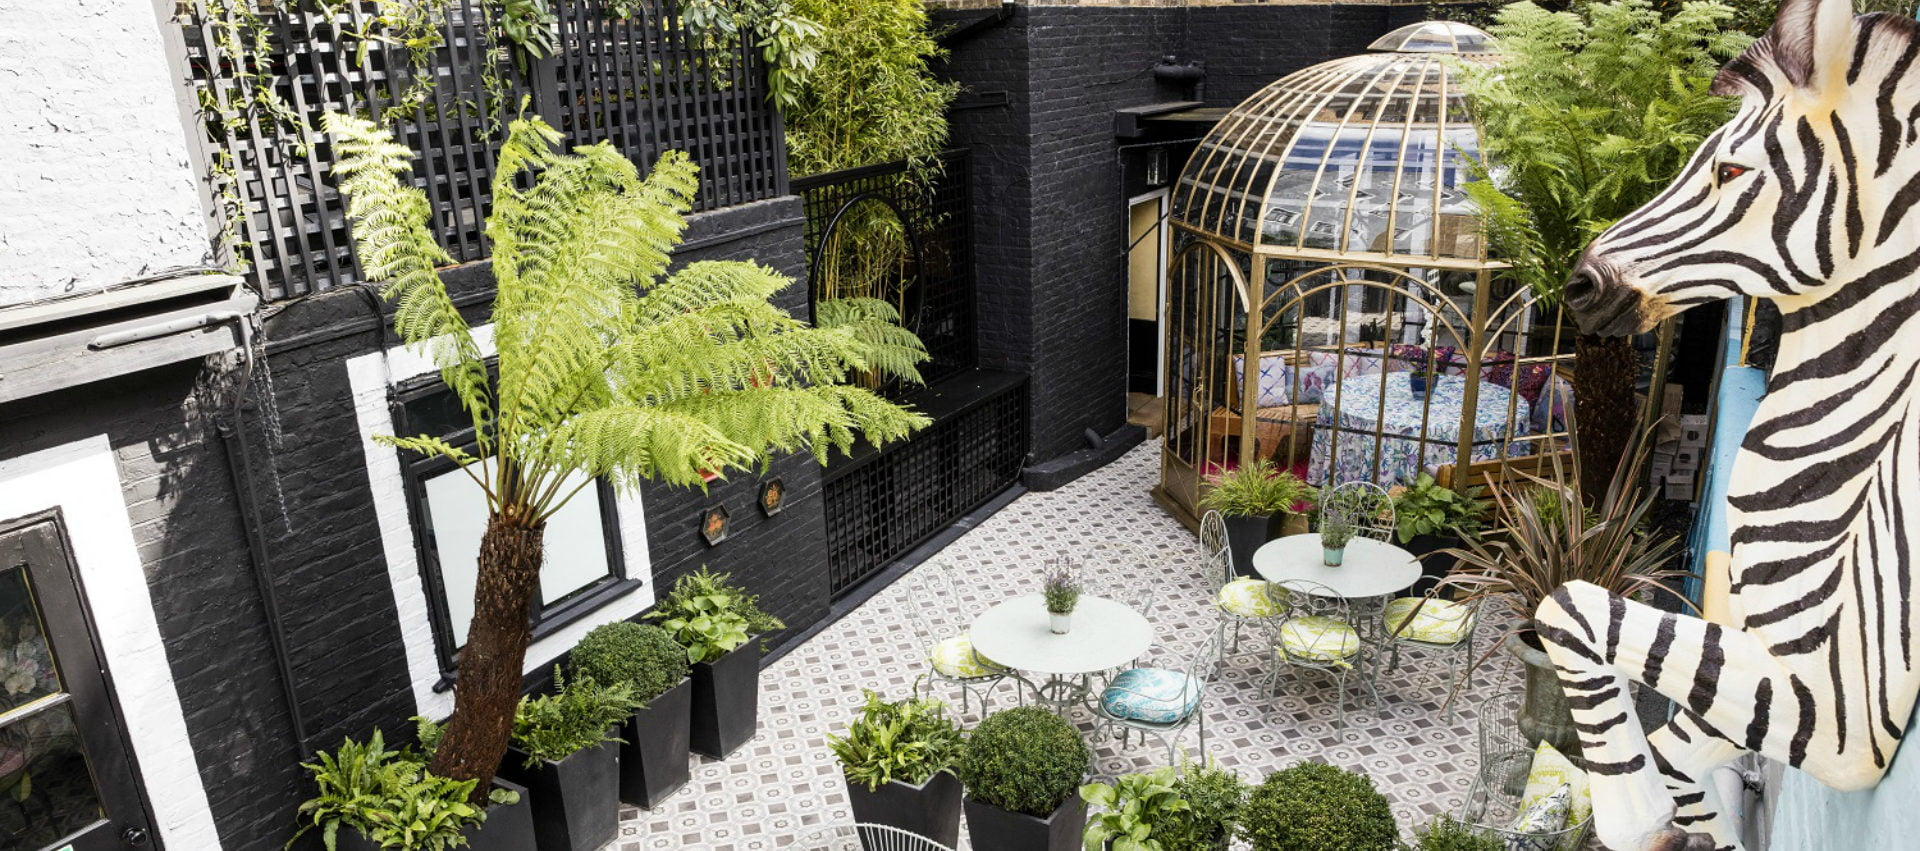 Boutique hotels in london 10 stylish and unusual places for Small boutique hotels london